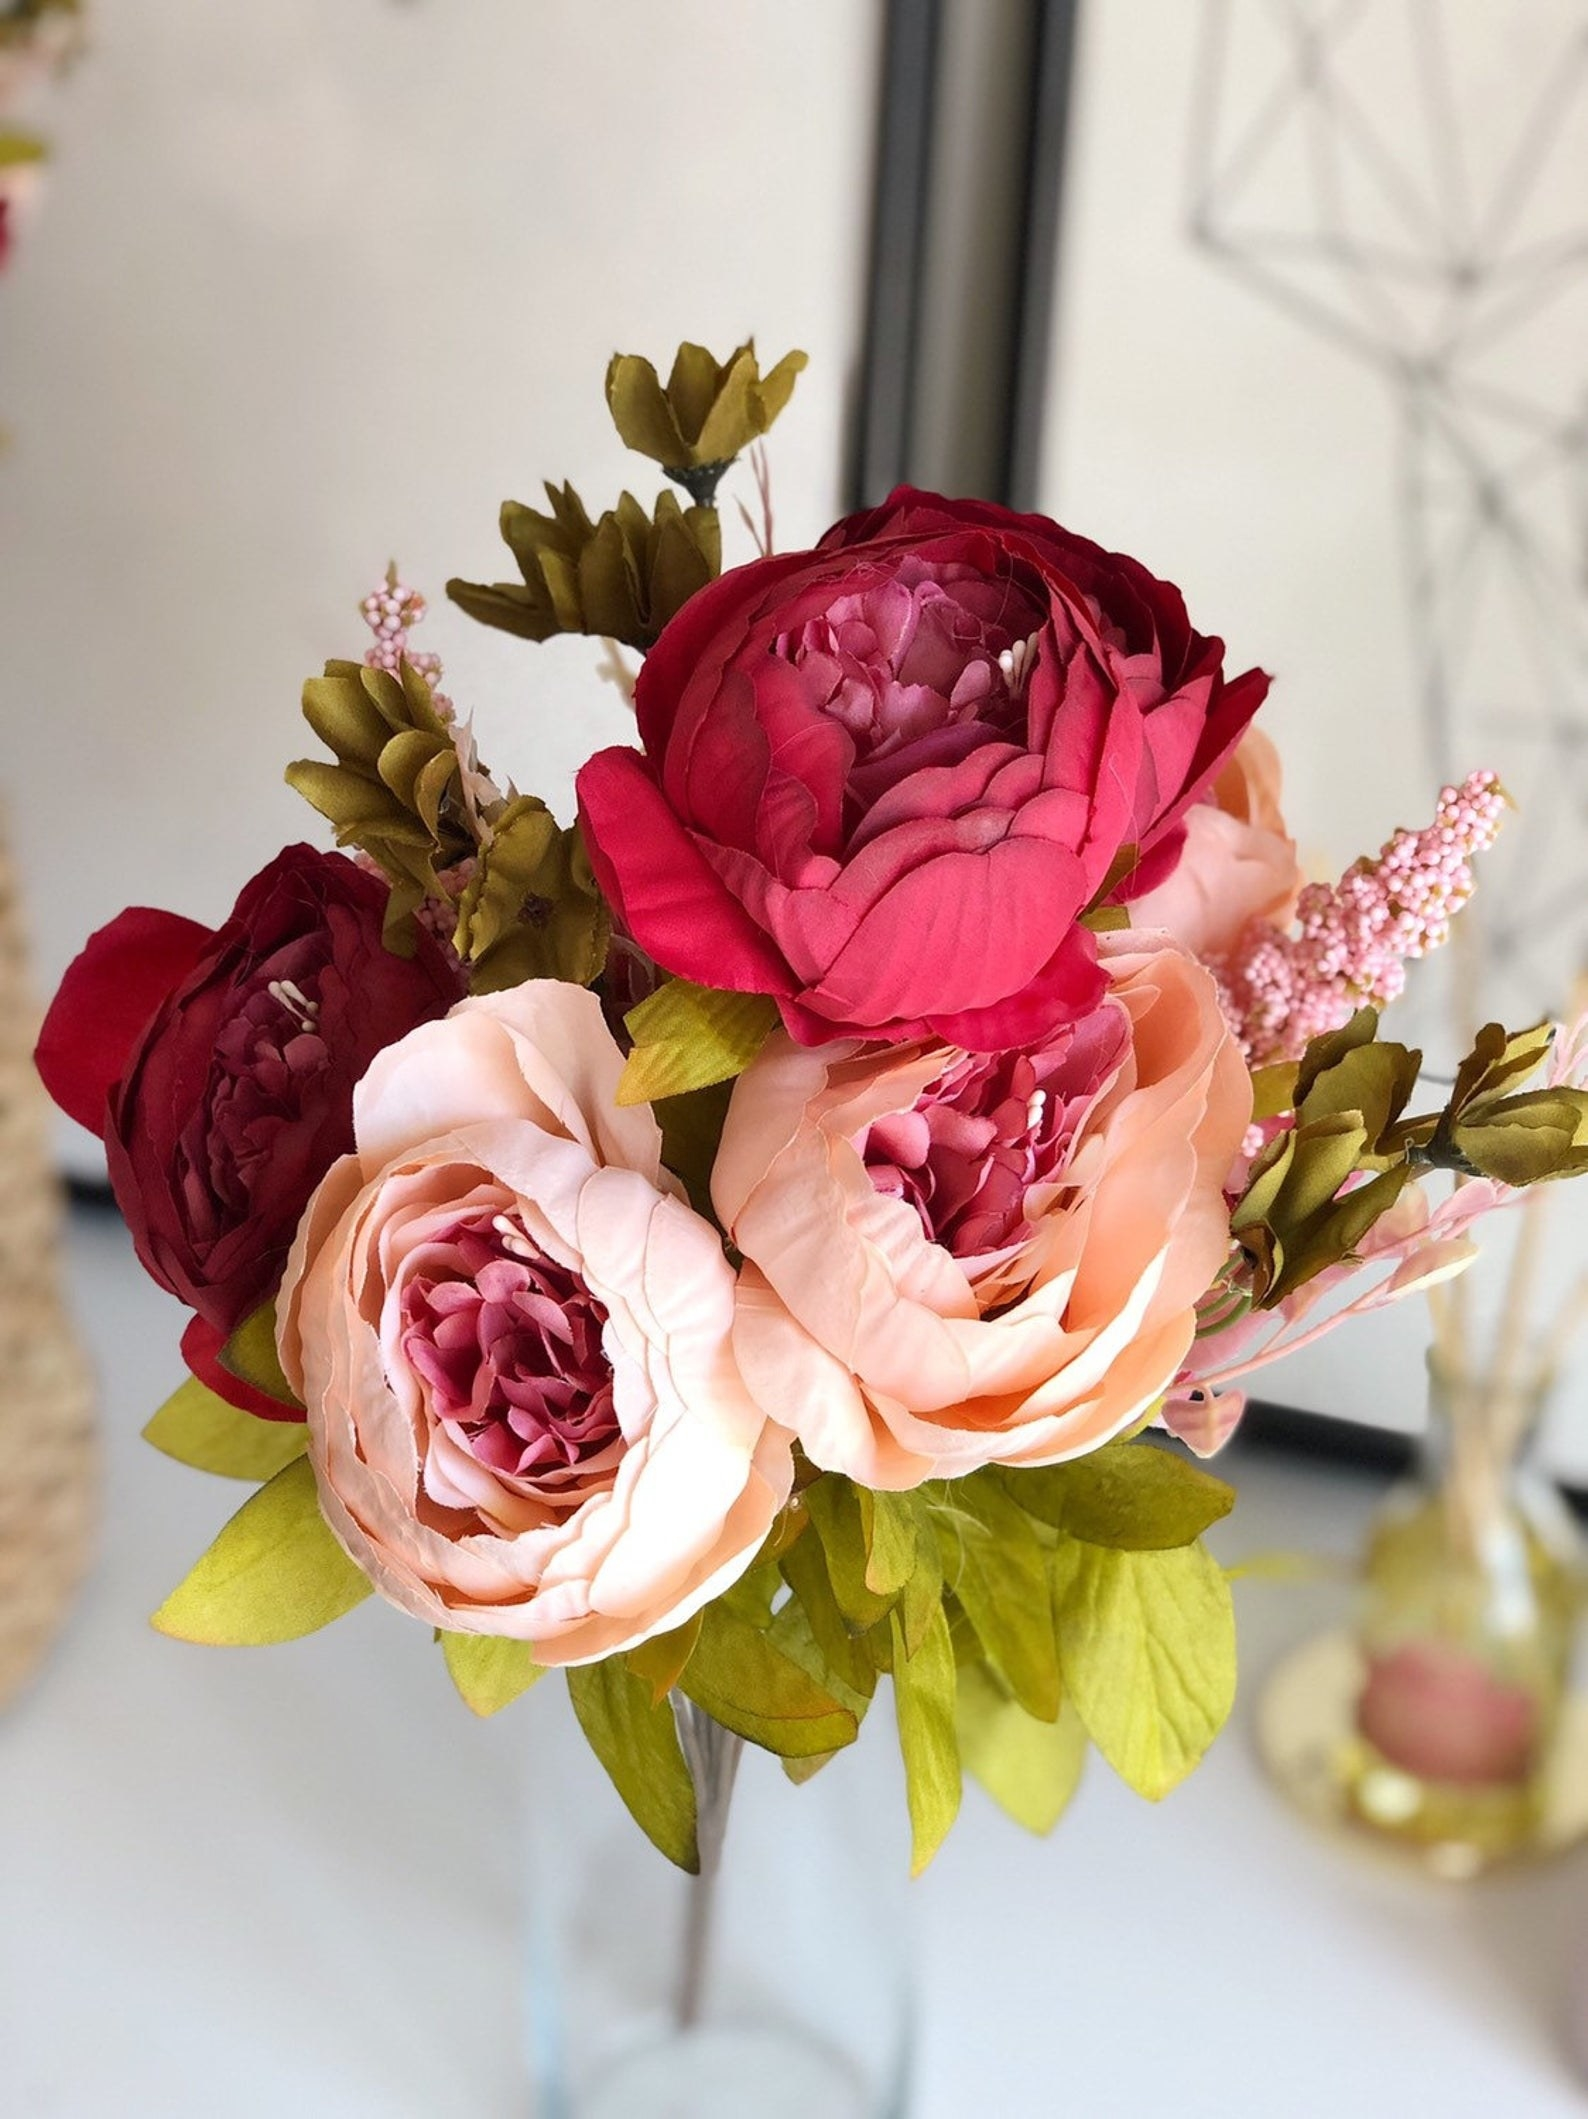 A bouquet of fake peonies in peach and red with green leaves